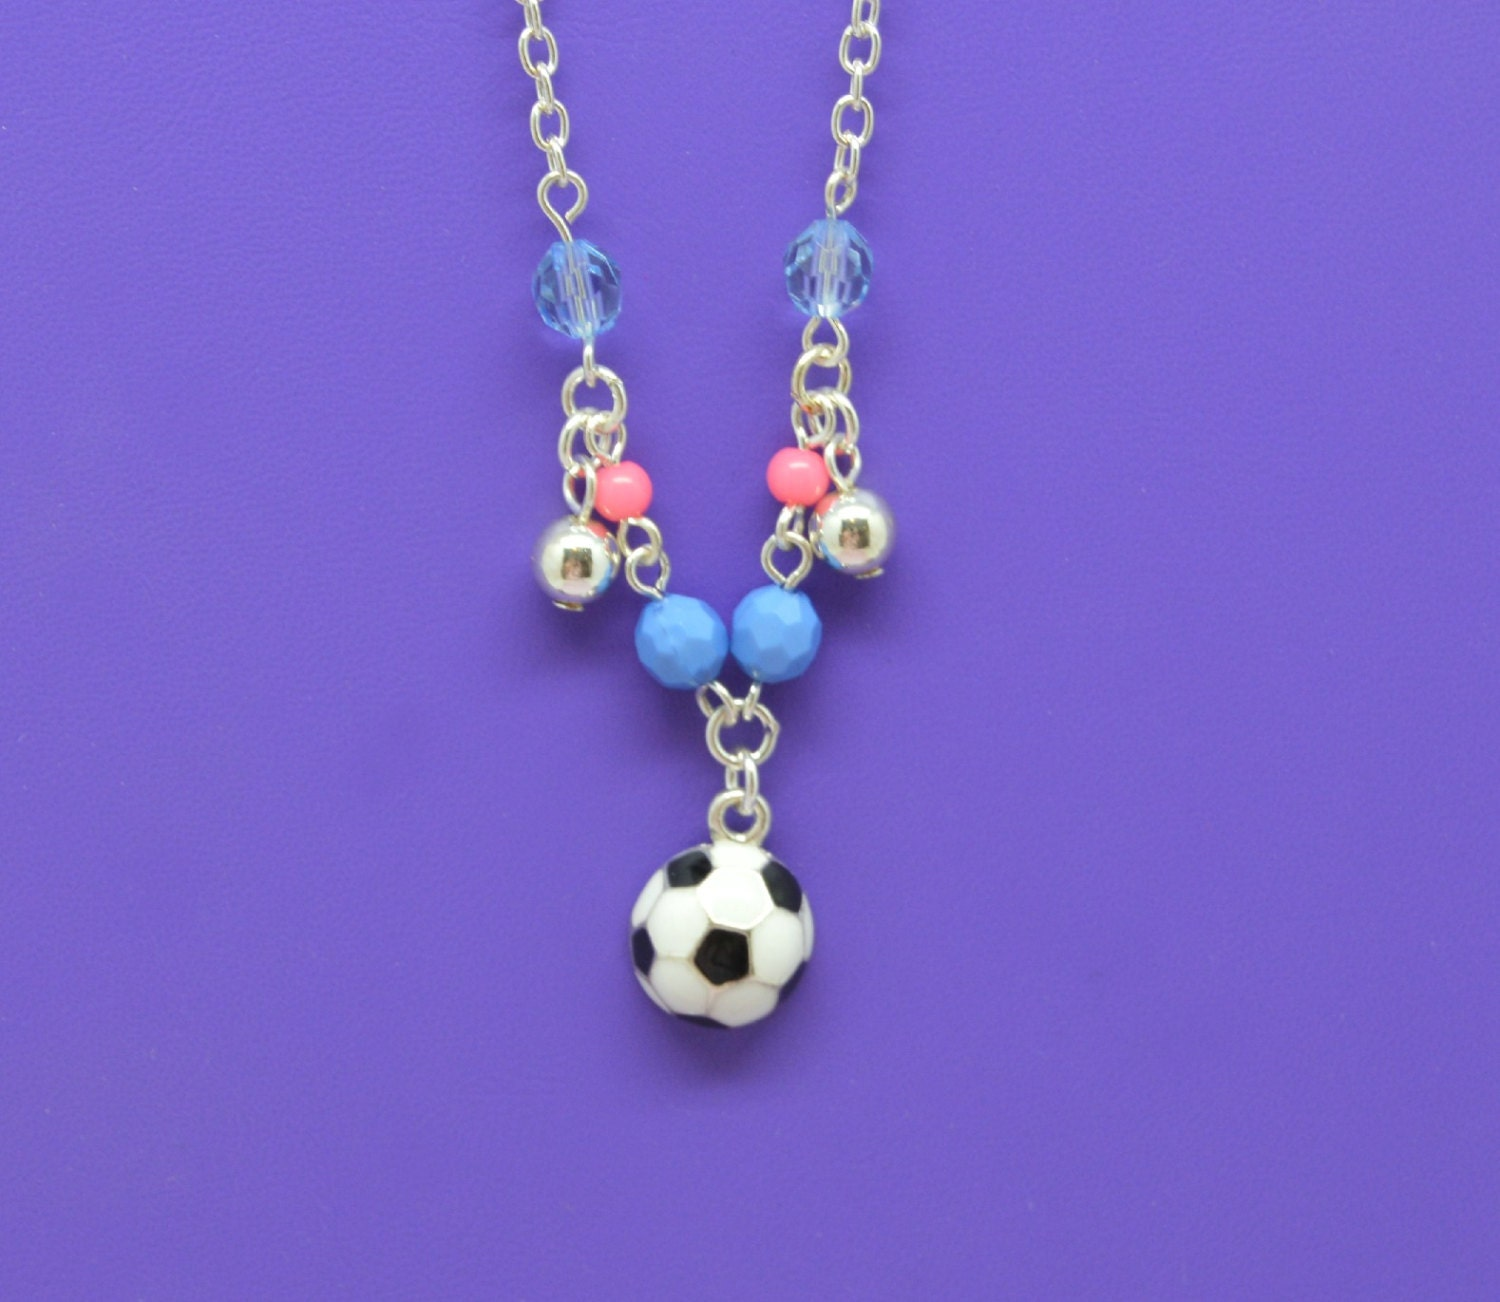 Soccer Charm Necklace Little Girls Jewelry Adorable Childs